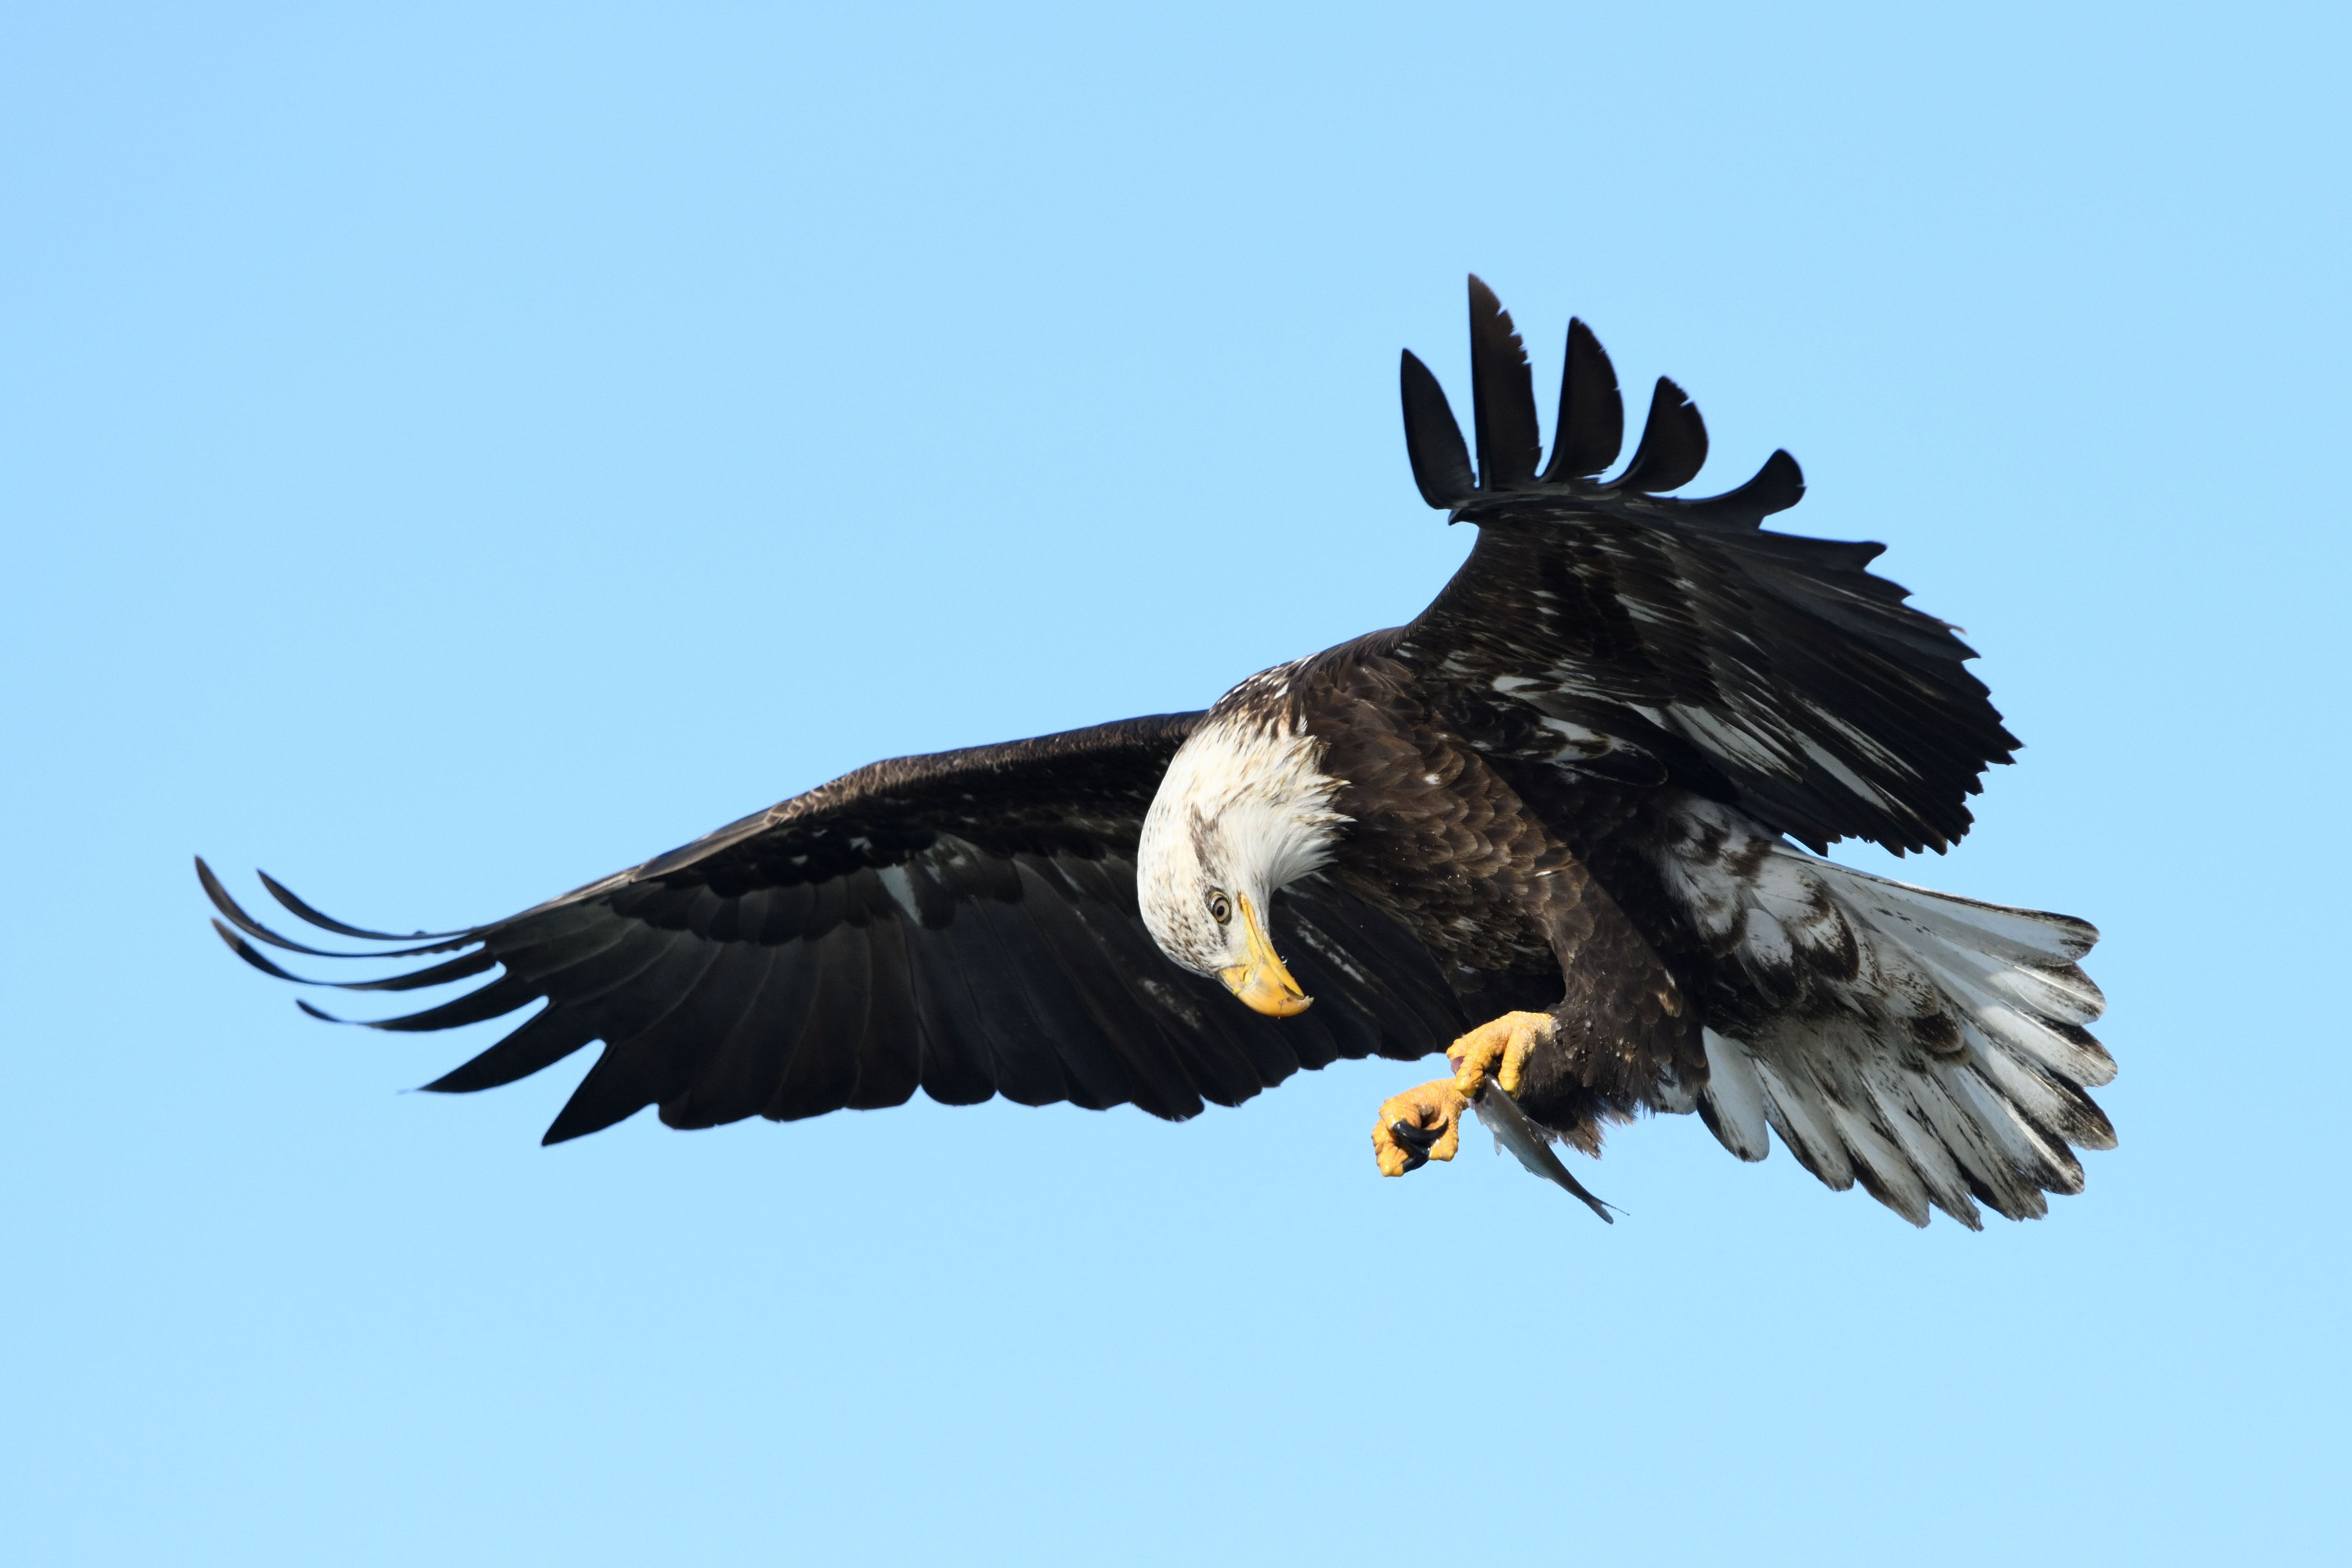 THE BEST LOCATIONS TO PHOTOGRAPH BALD EAGLES